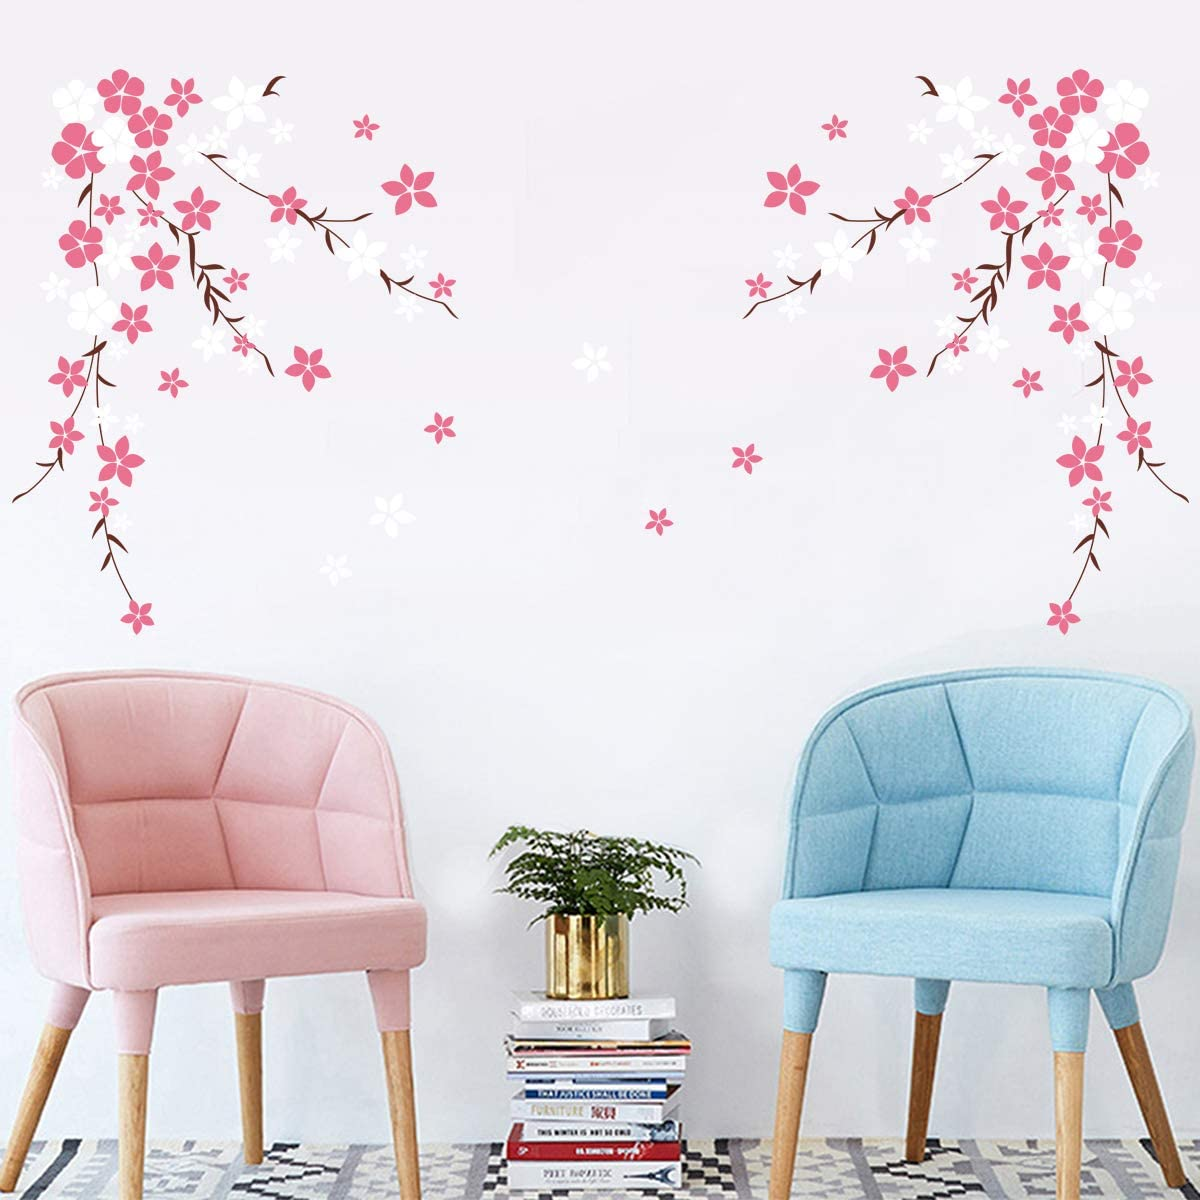 decalmile Pink Cherry Blossom Flower Wall Decals Floral Tree Branch Wall Stickers Bedroom Living Room TV Background Home Decor